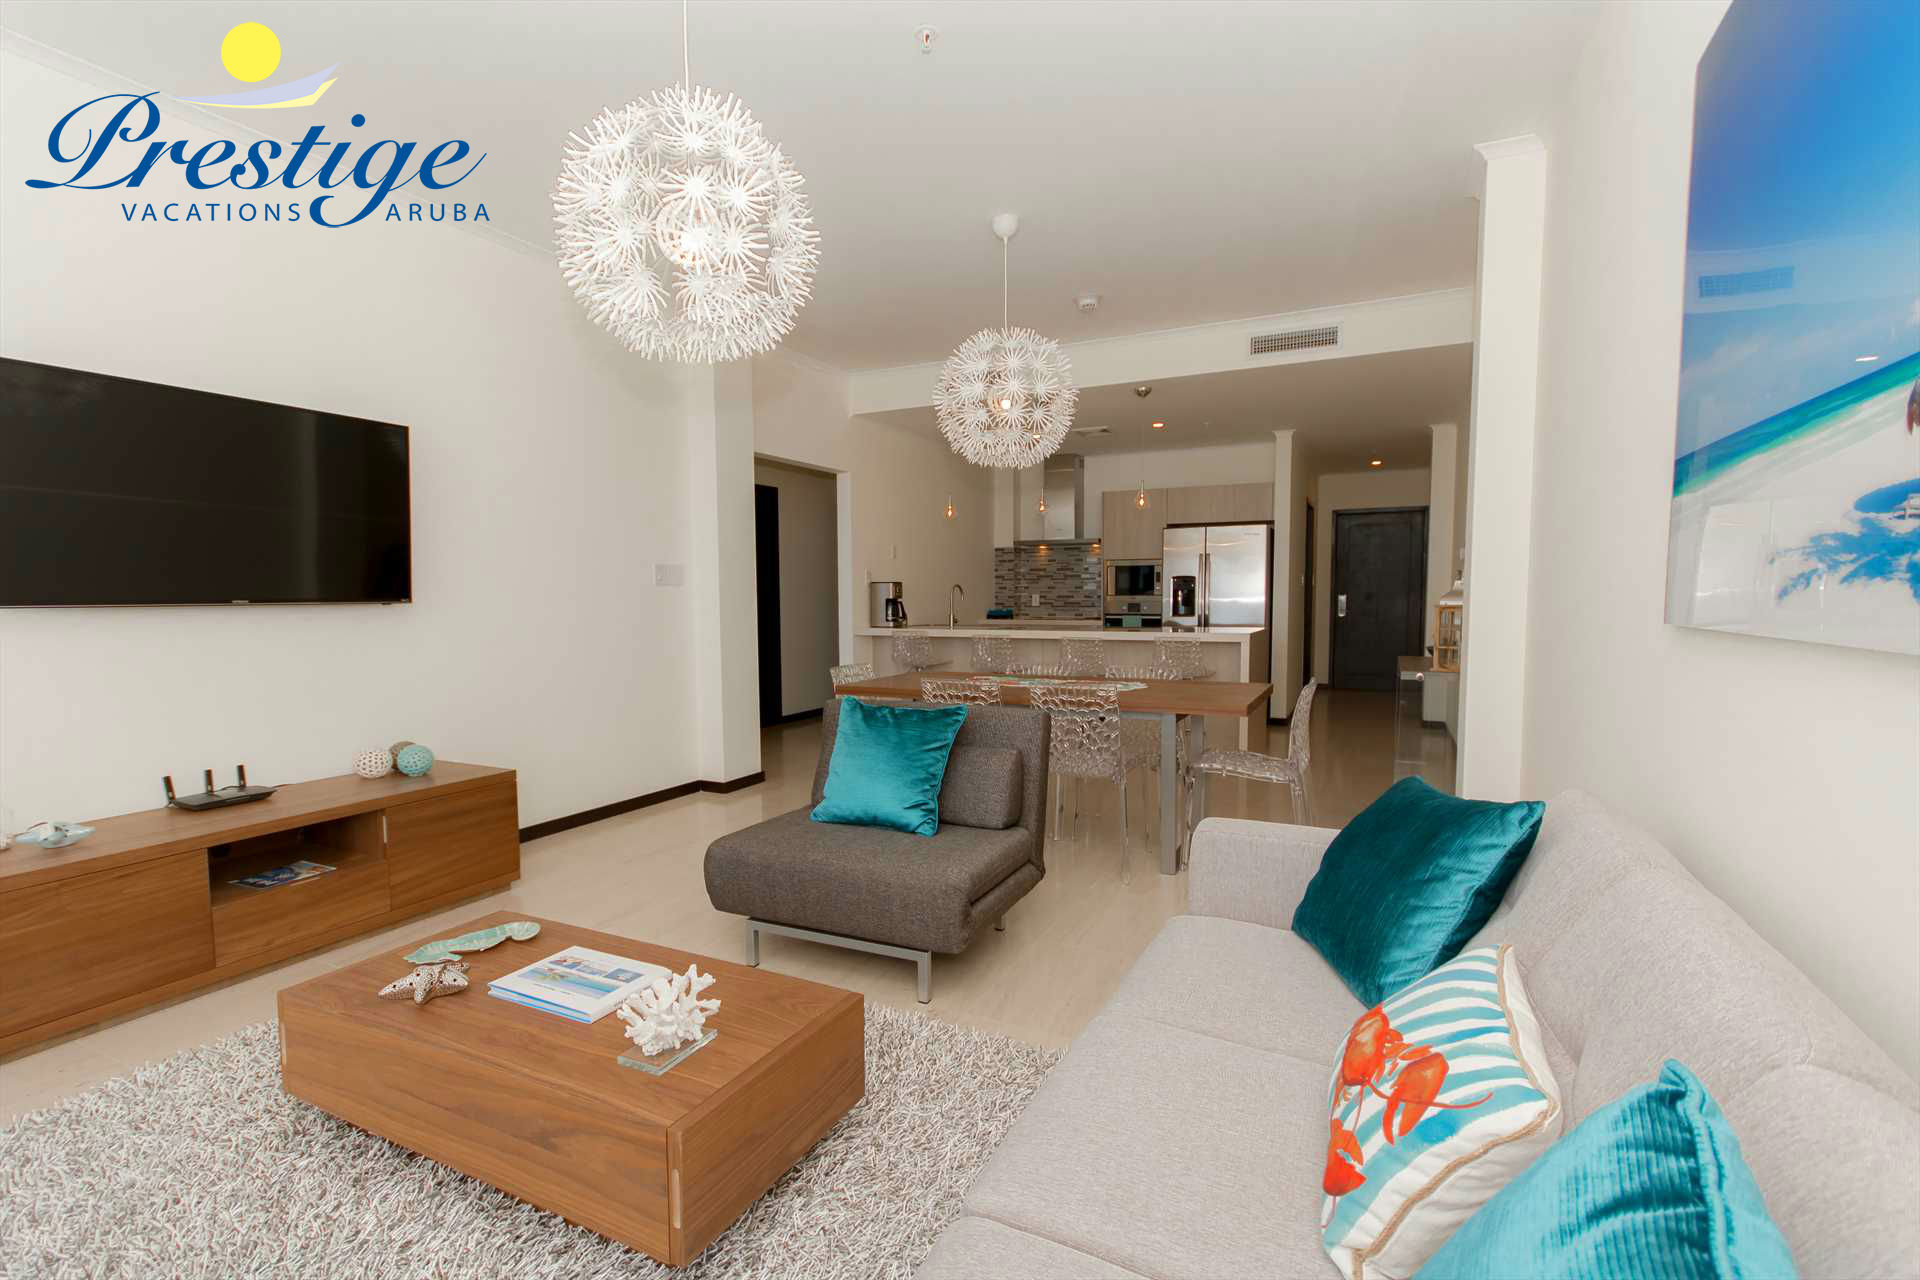 The open plan living area is provided with a sofa-bed (with a double-size mattress), a chair and TV